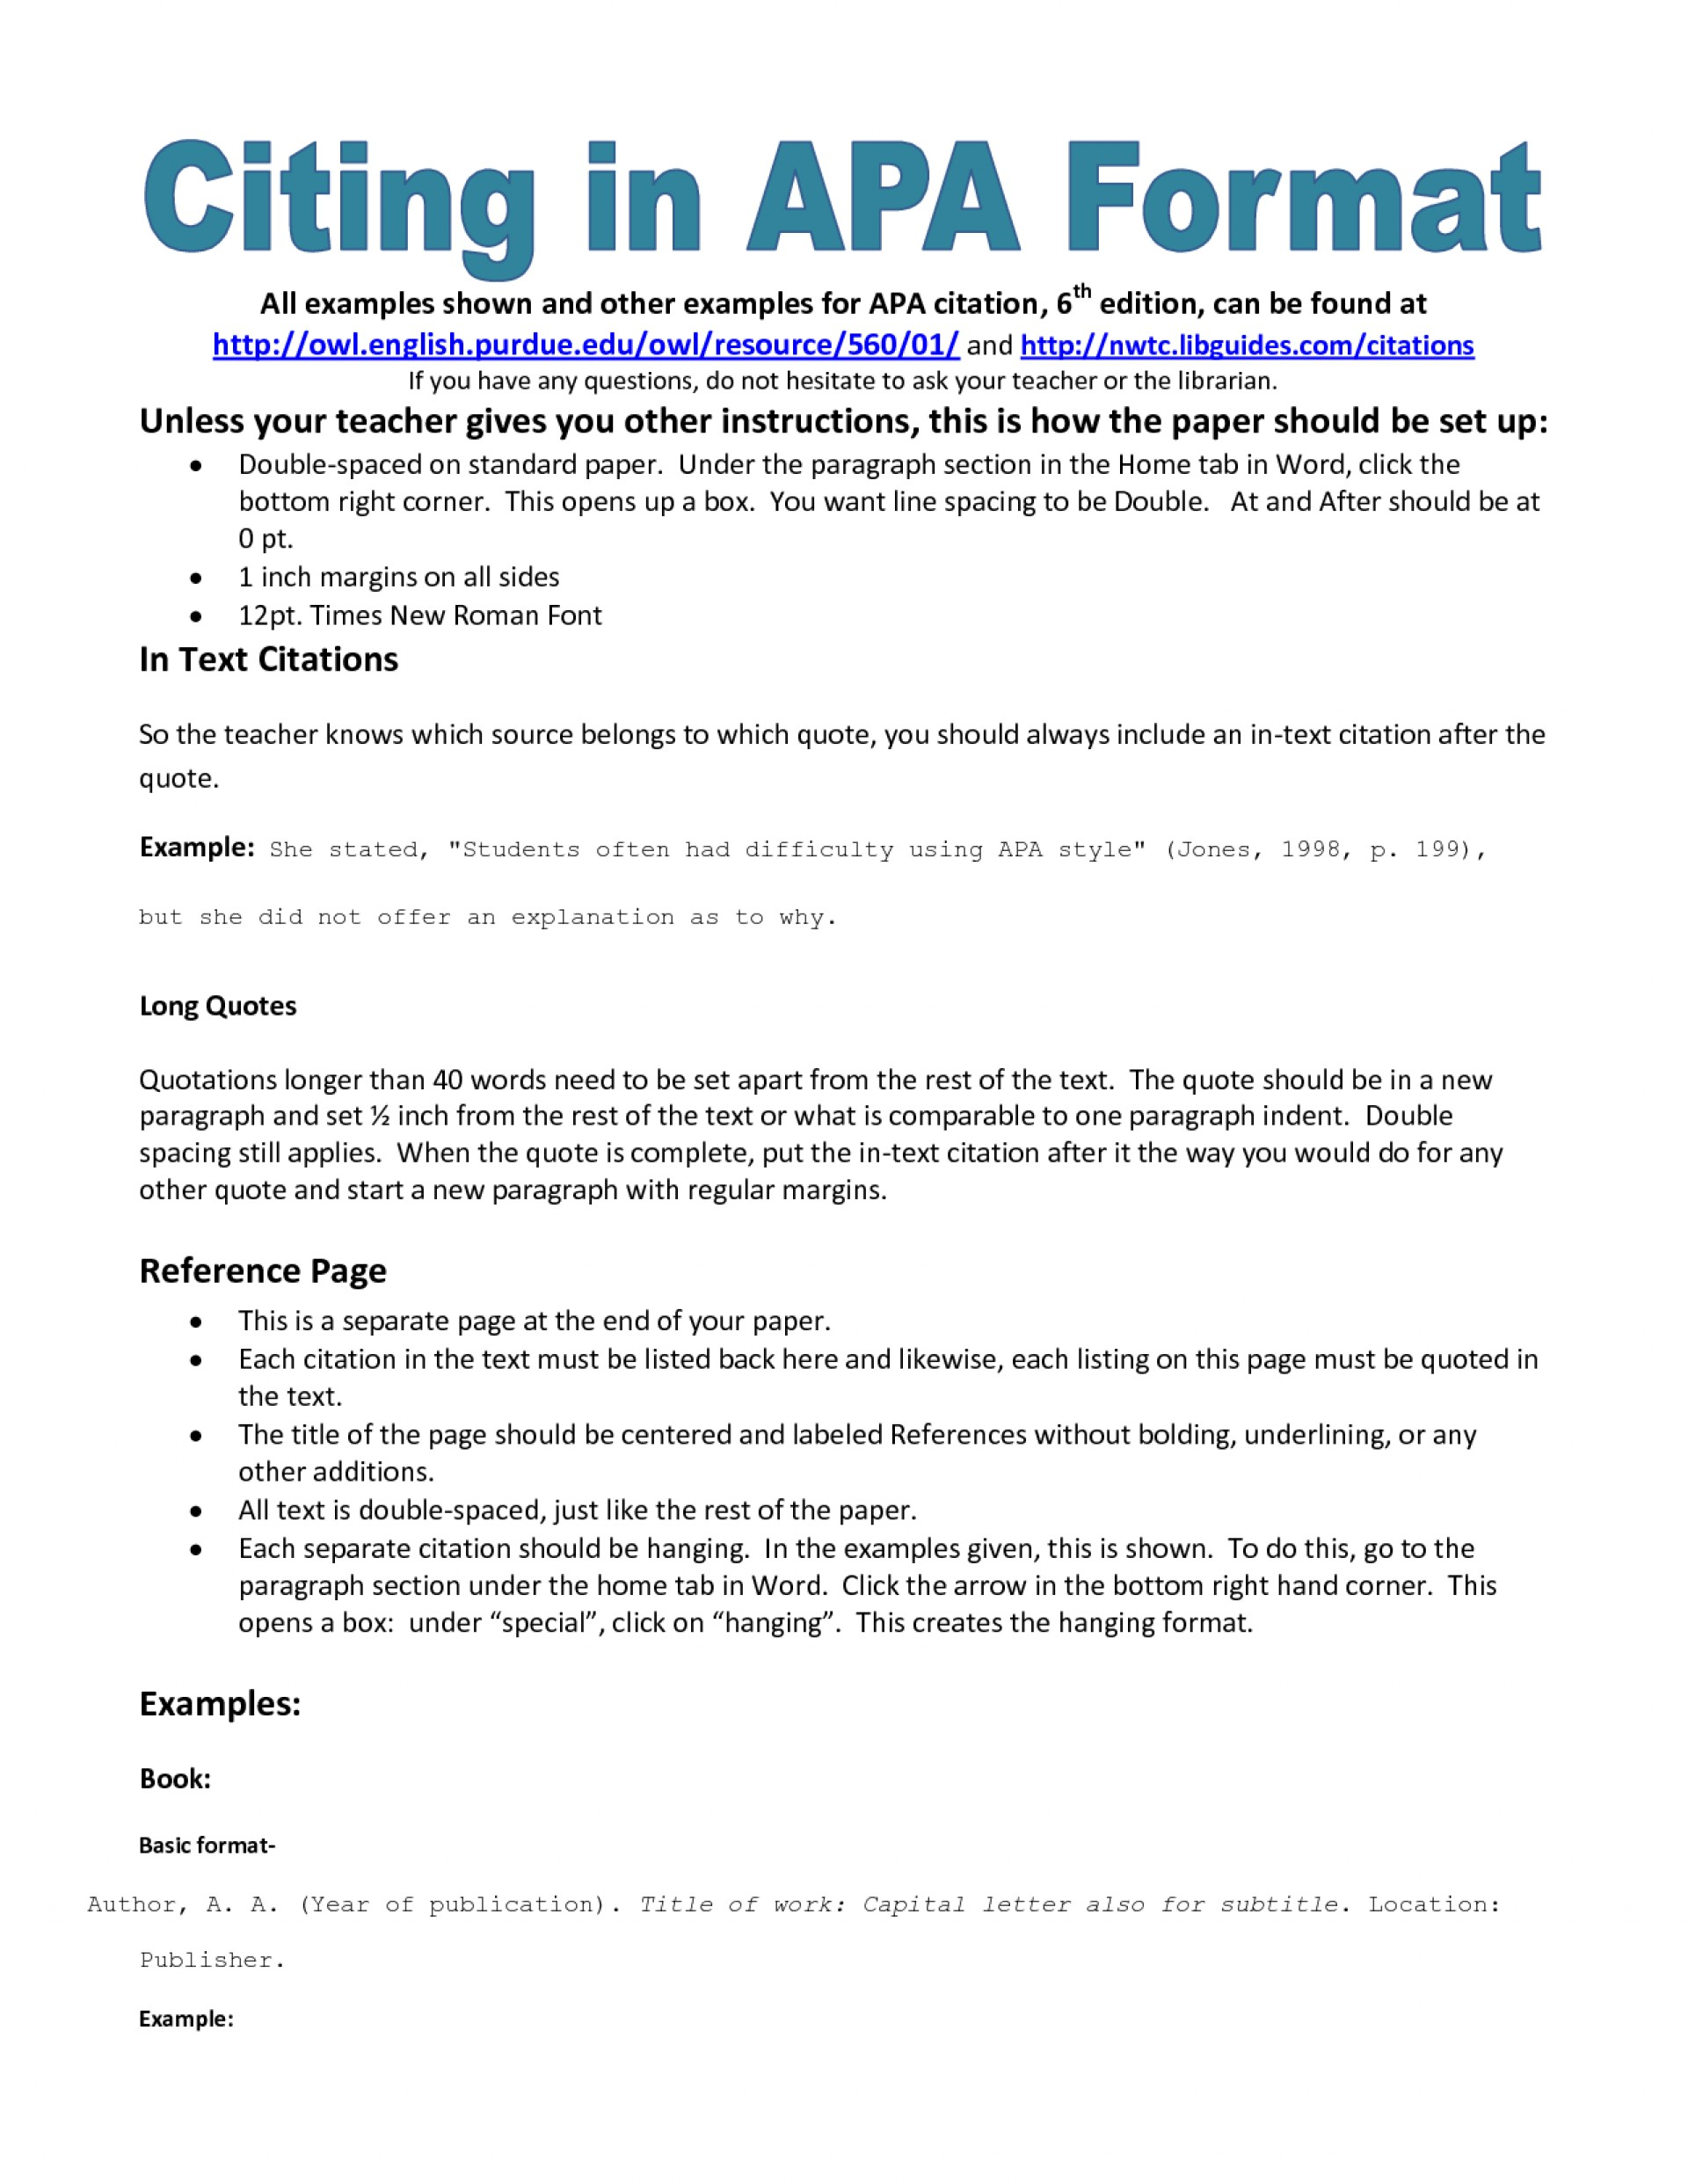 001 Apa Citation Research Paper Format Remarkable Style Model 1920